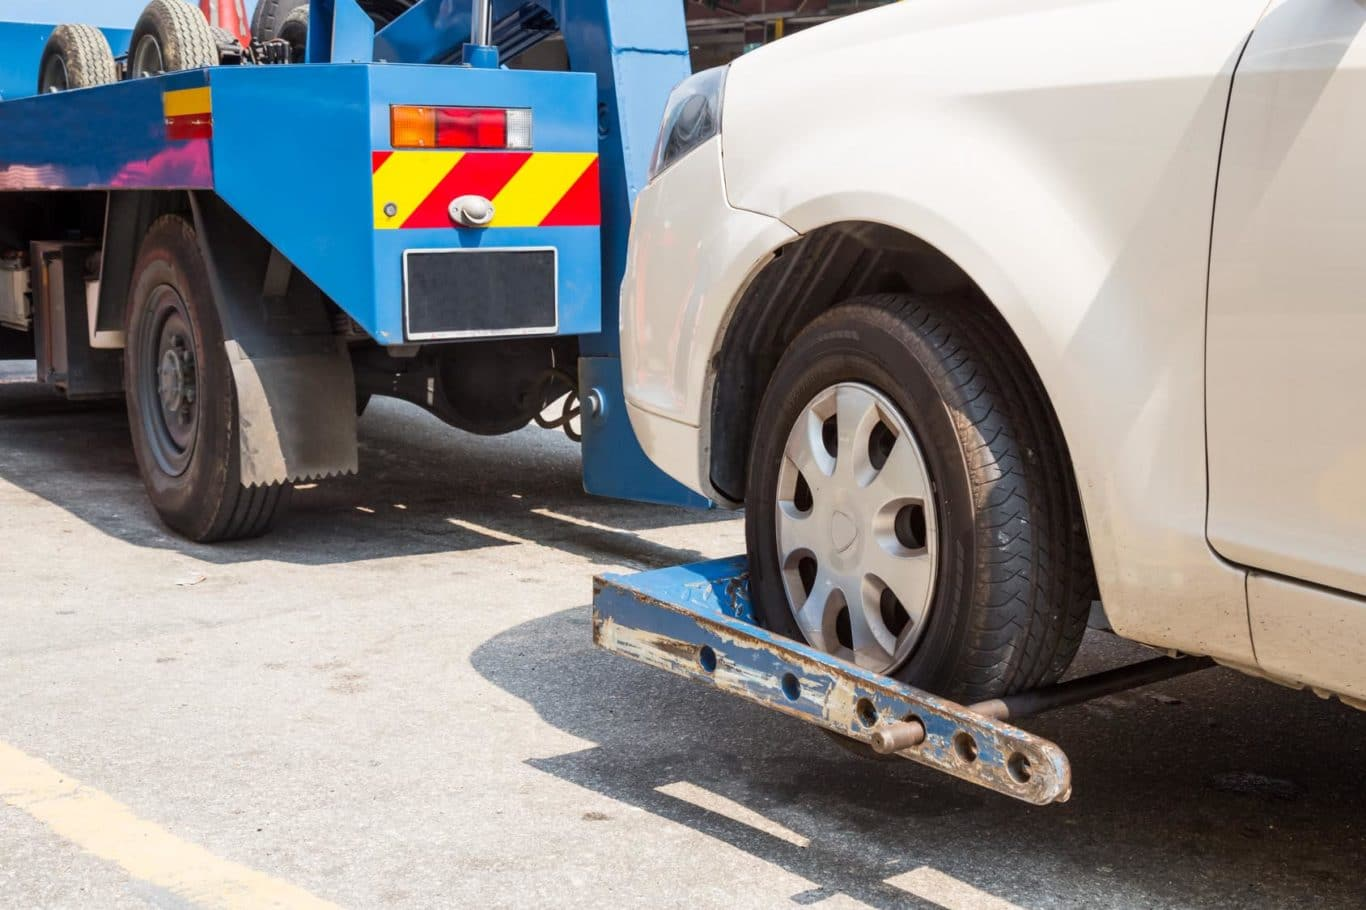 Drimnagh expert Towing services